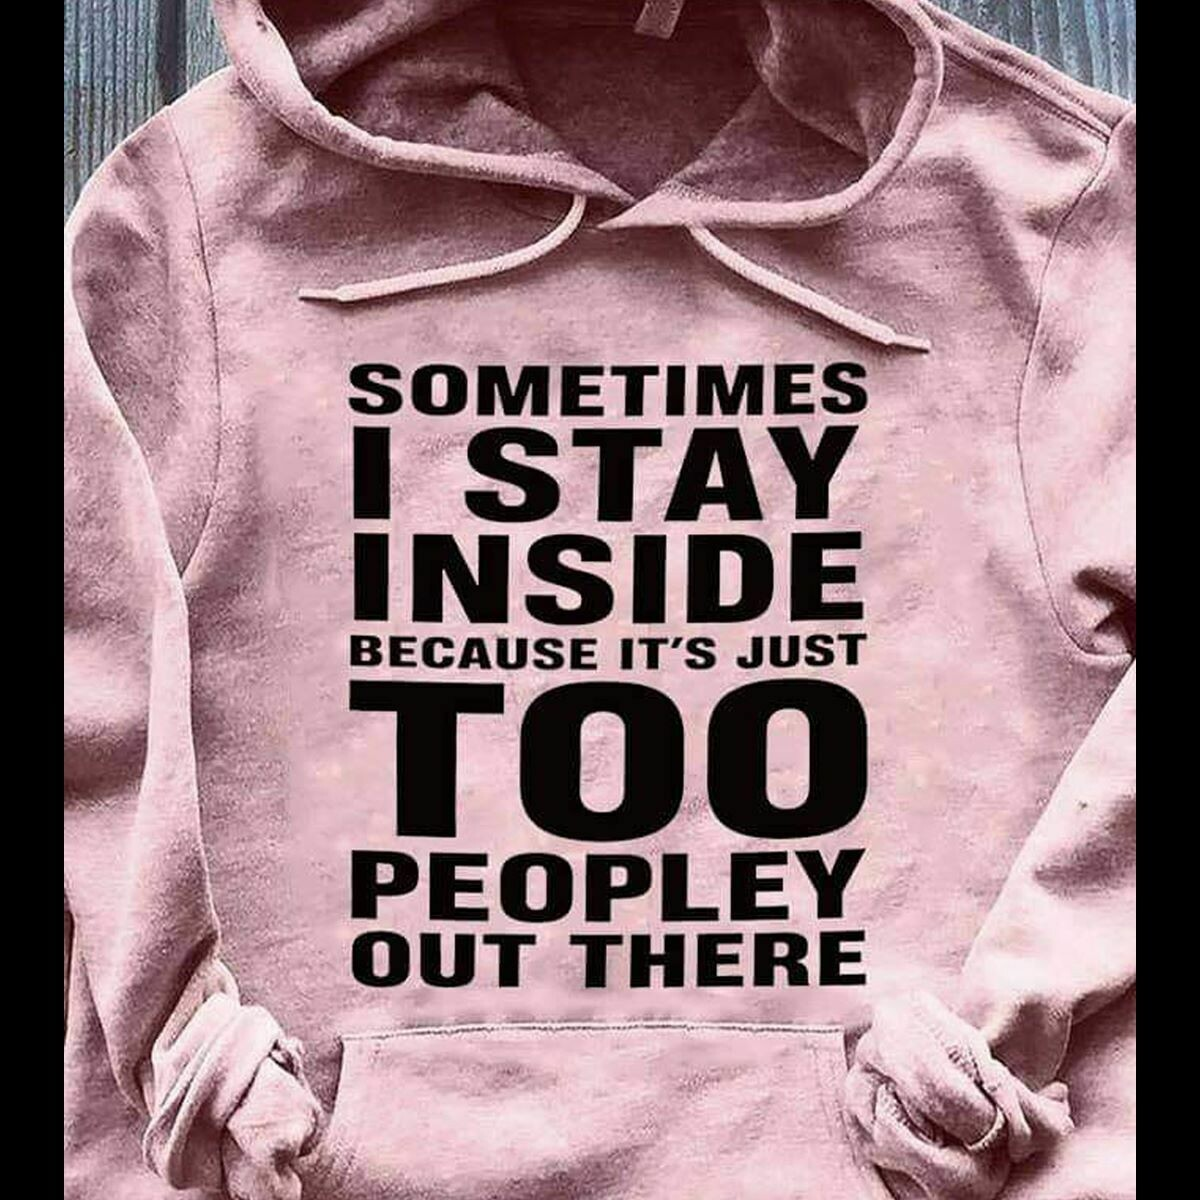 Sometimes I Stay Inside Because It's Just Too Peopley Out There shirt  womens Funny sweatshirt , best friend gift , christma gift ideas